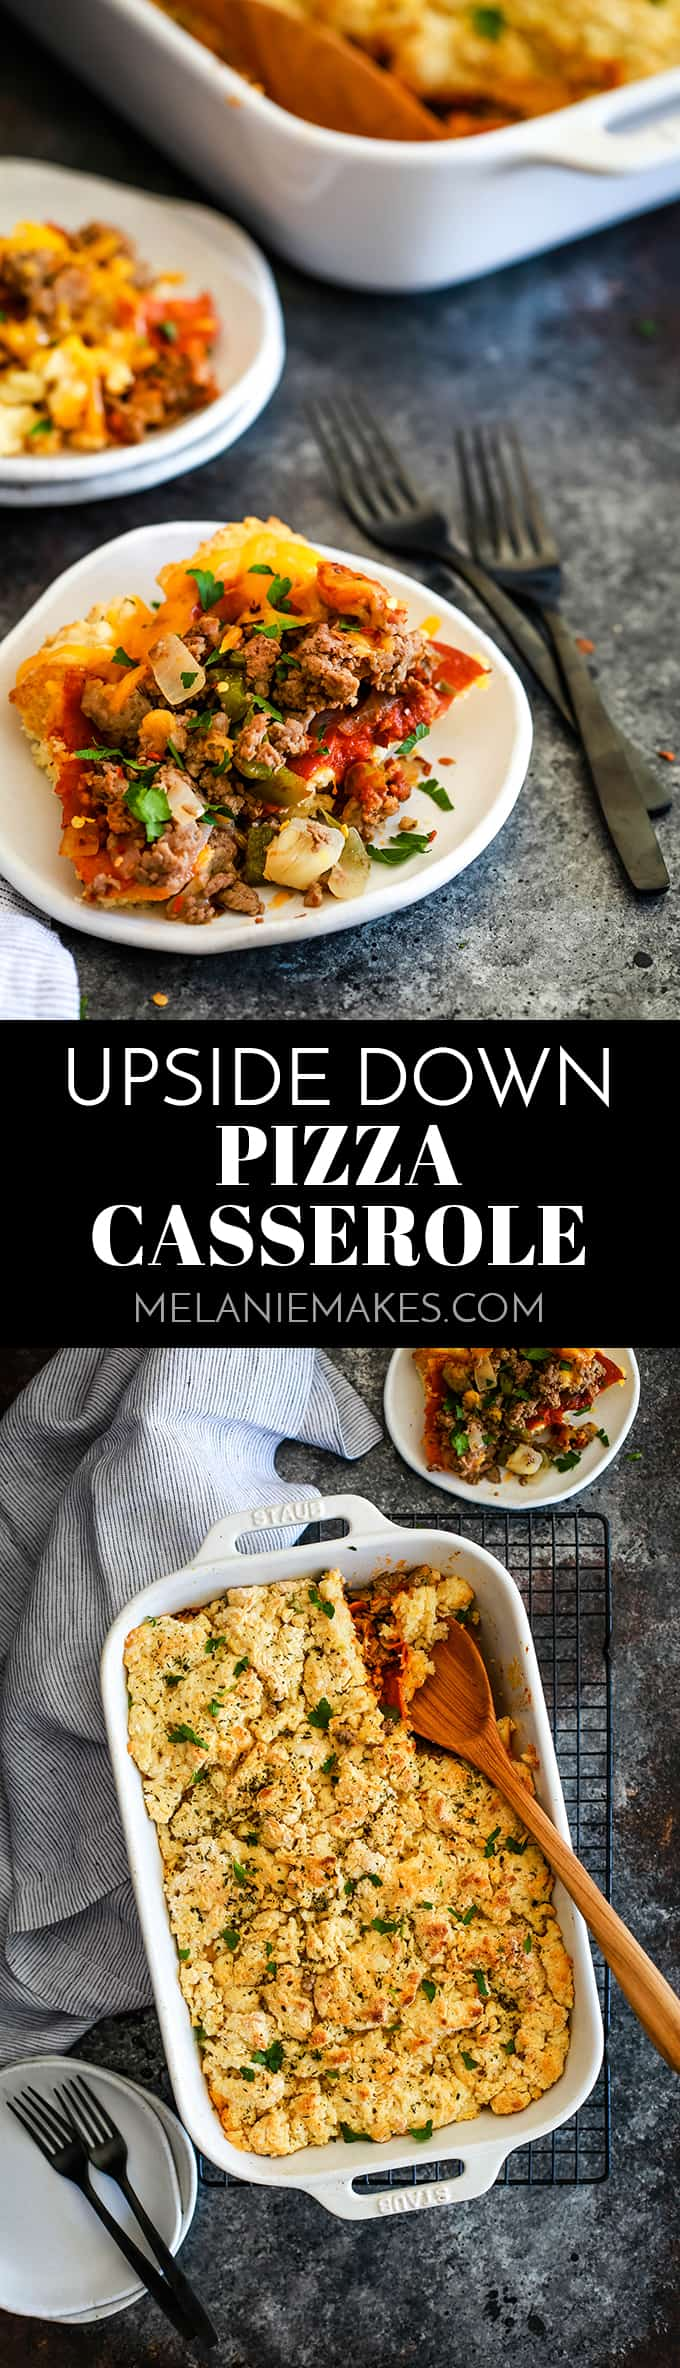 This Upside Down Pizza Casserole is a family favorite with the flavor volume turned way up!  Haven't you heard? Crust on top is way more fun! #pizza #casserole #dinnerrecipes #easyrecipe #beef #sausage